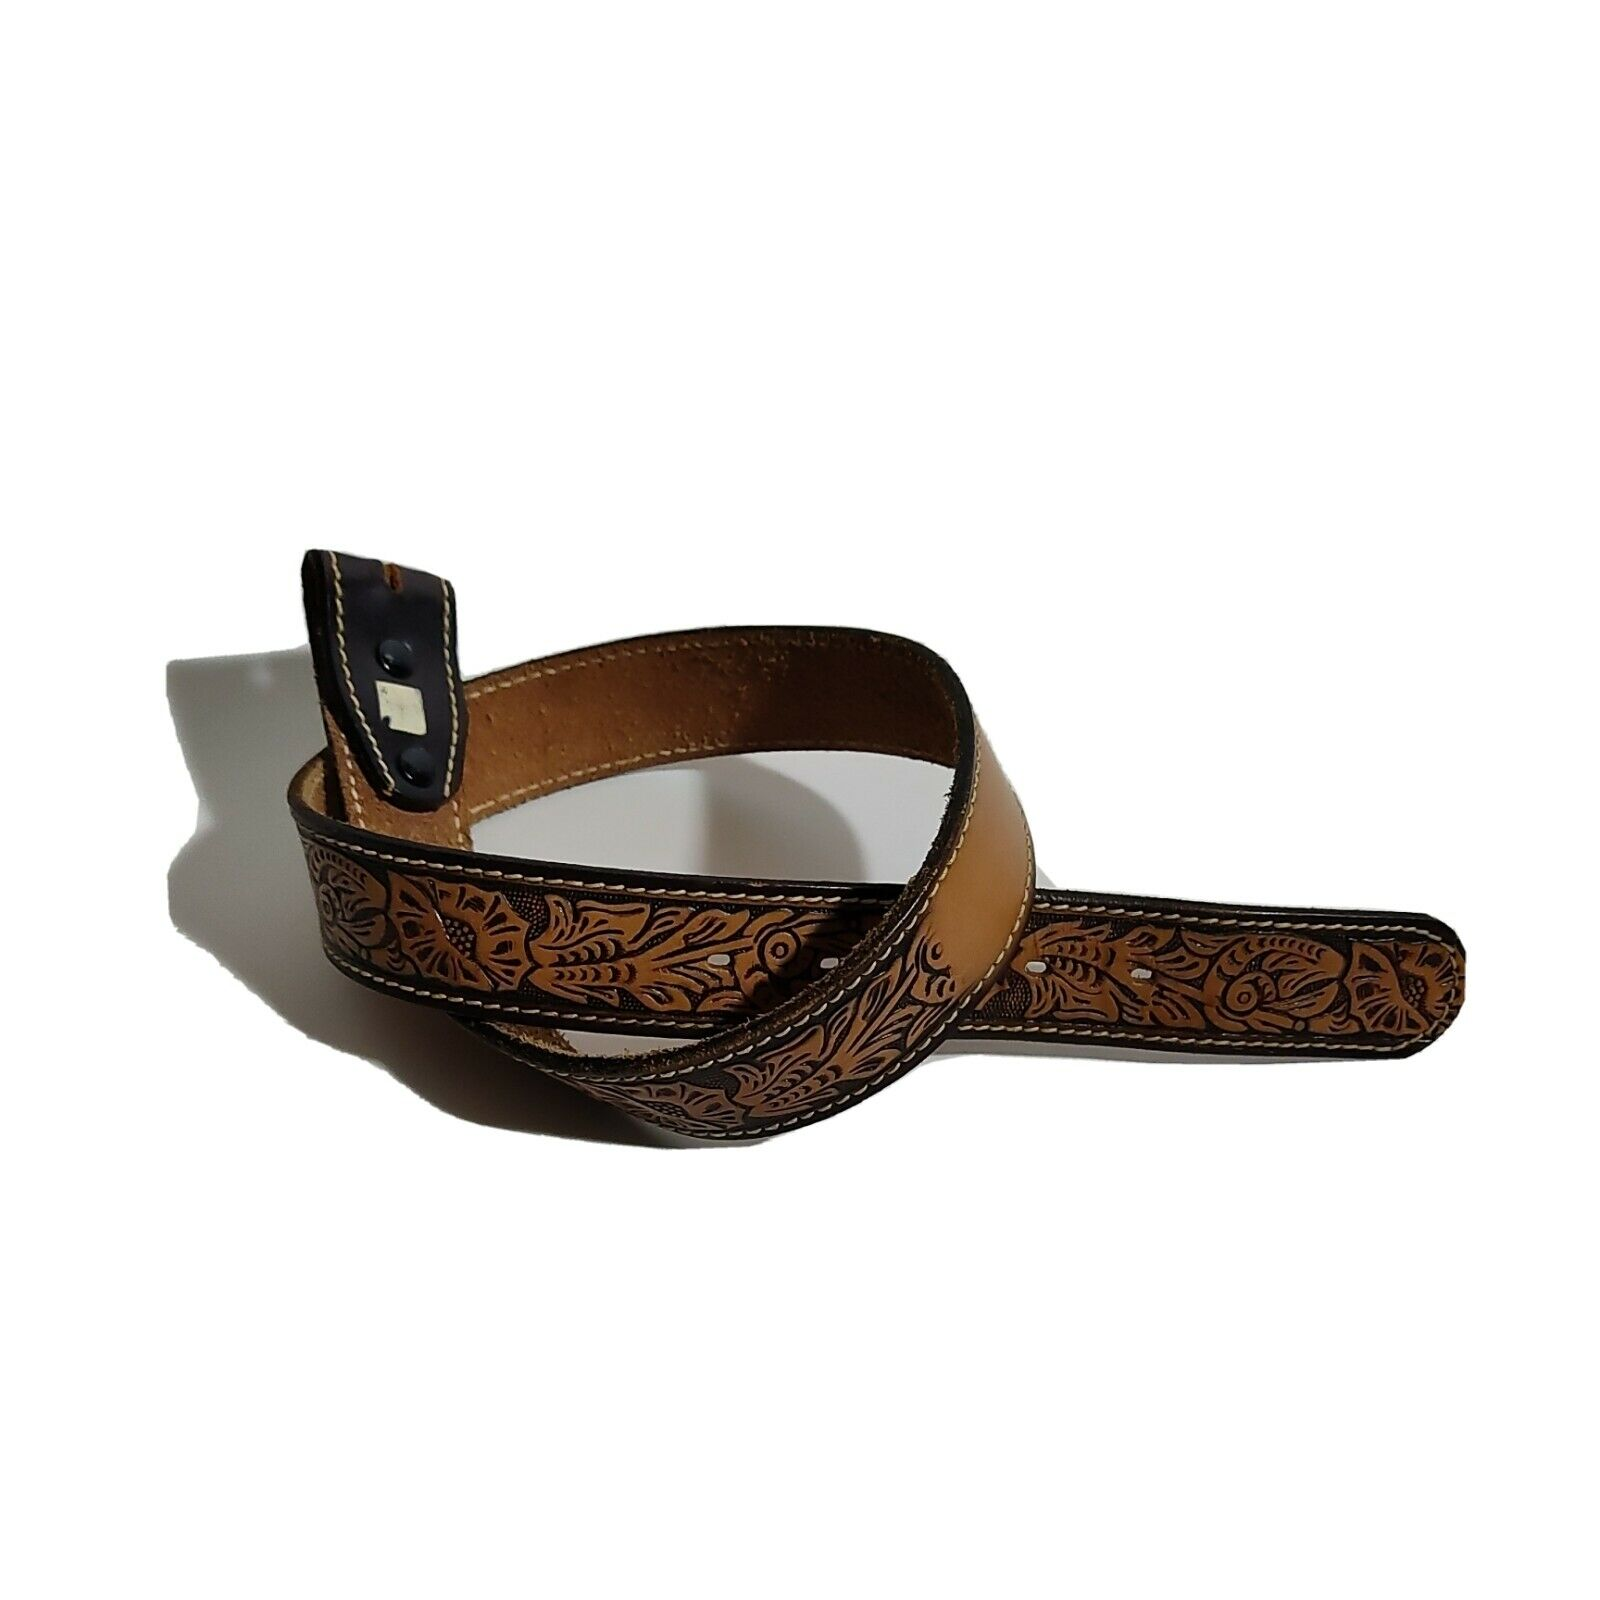 30 Inch Leather Belt Hand Tooled Finish Brown/Tan No Buckle Floral Design NWOT